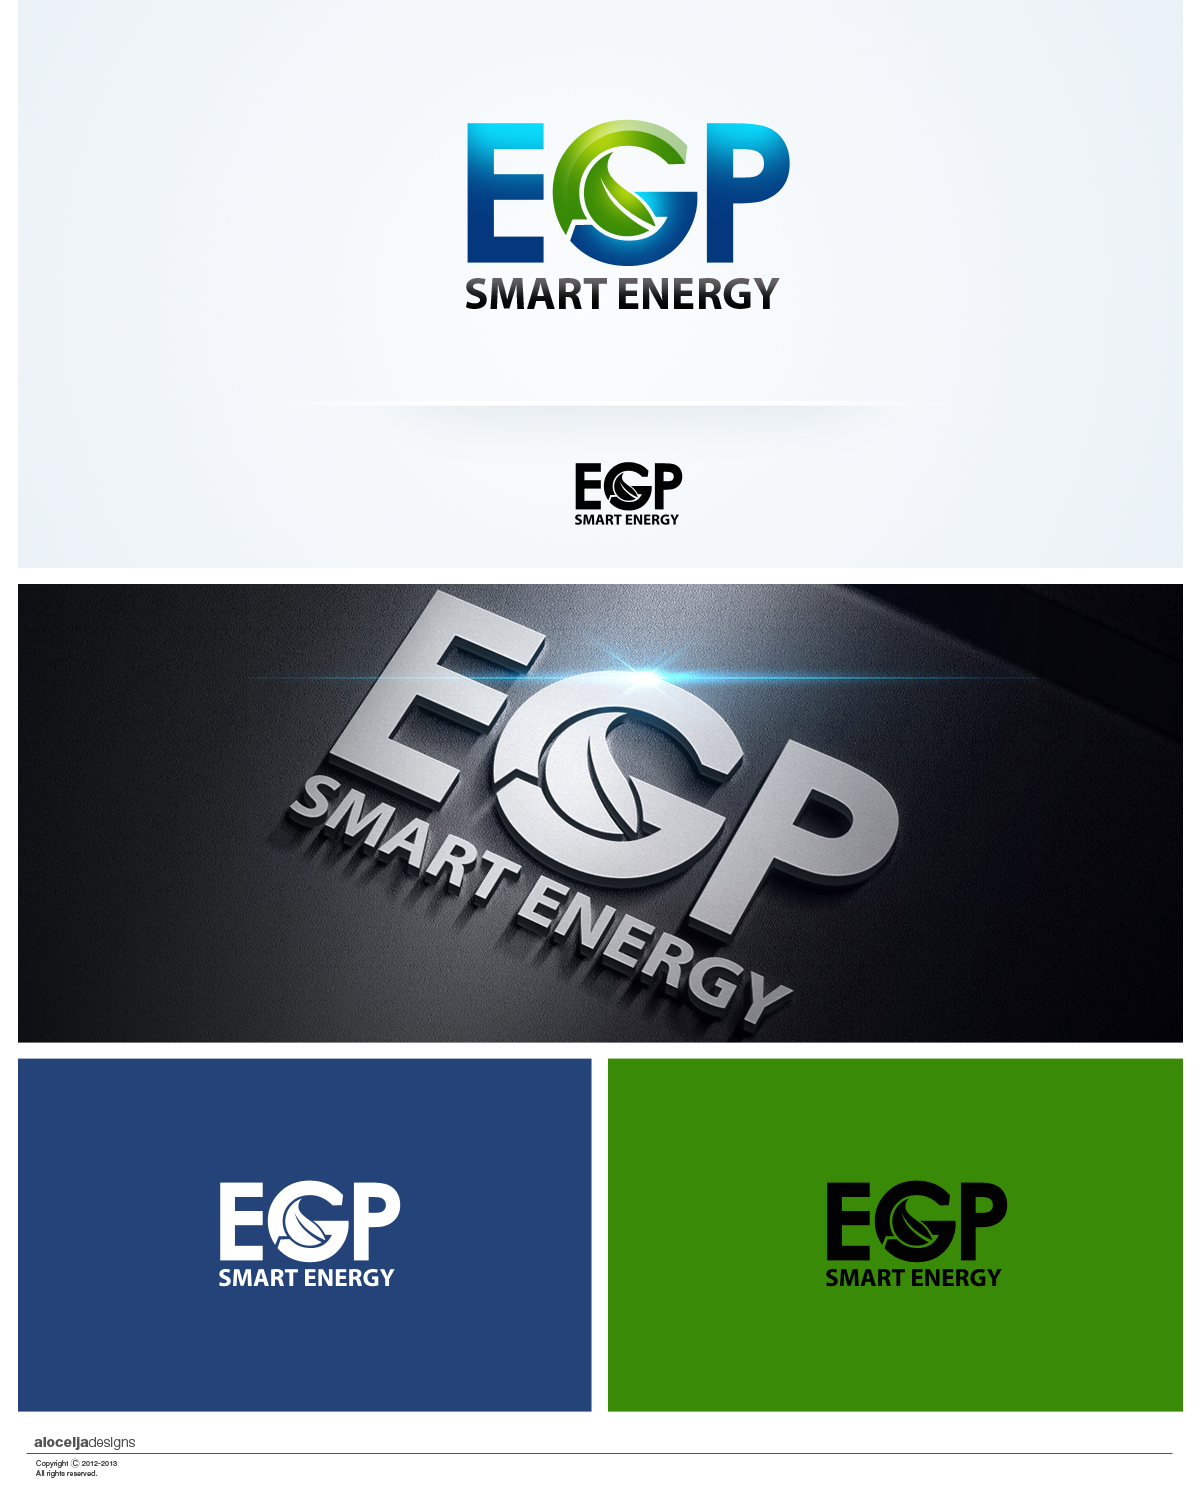 Logo Design by alocelja - Entry No. 58 in the Logo Design Contest Captivating Logo Design for EGP Smart Energy.